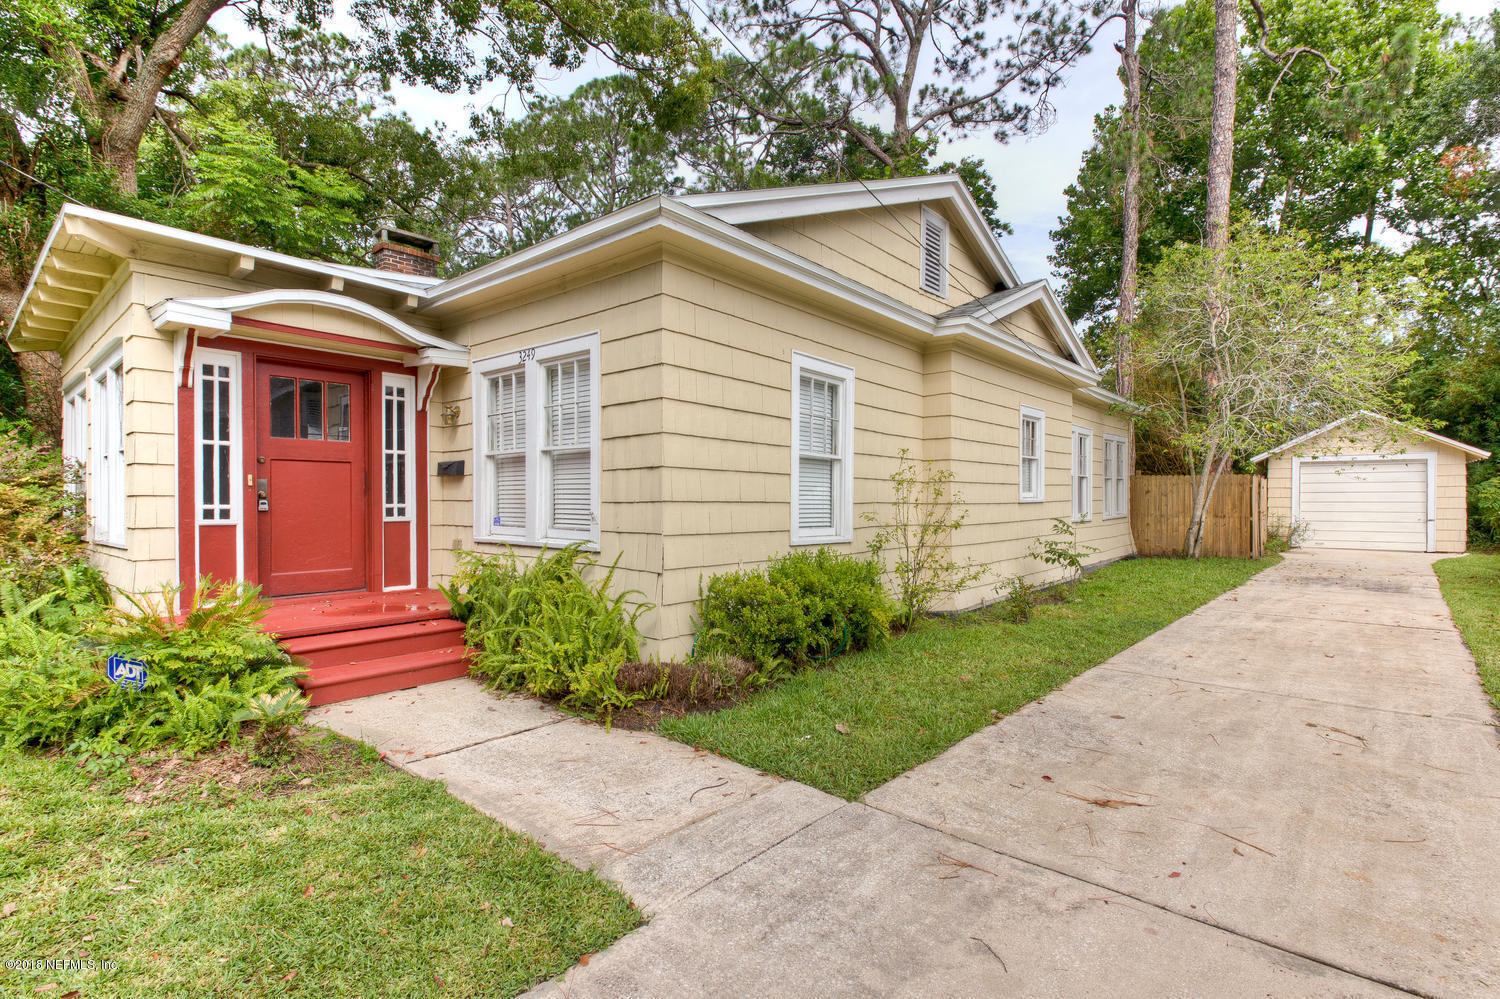 3249 RANDALL, JACKSONVILLE, FLORIDA 32205, 2 Bedrooms Bedrooms, ,2 BathroomsBathrooms,Residential - single family,For sale,RANDALL,942044